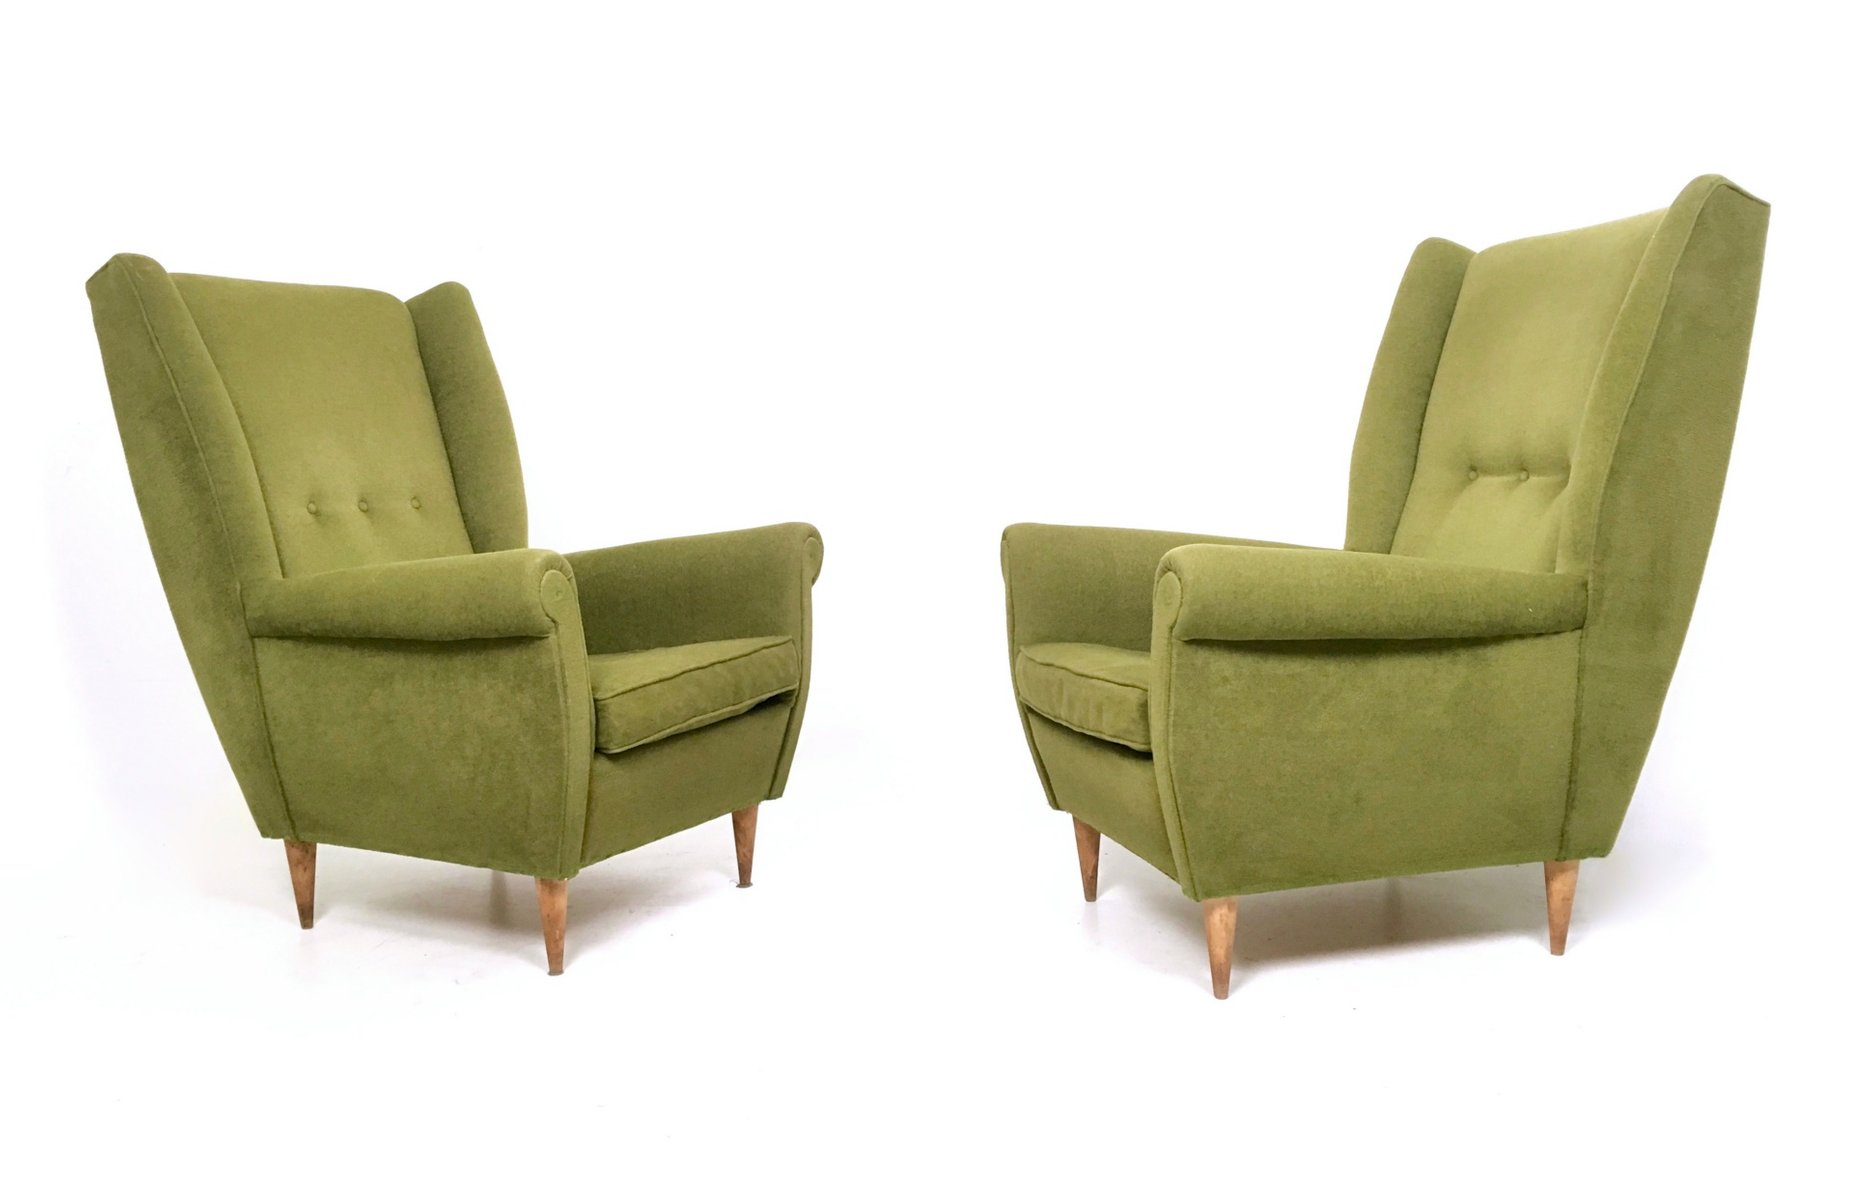 Olive Green Armchairs 1950s Set of 2 for sale at Pamono